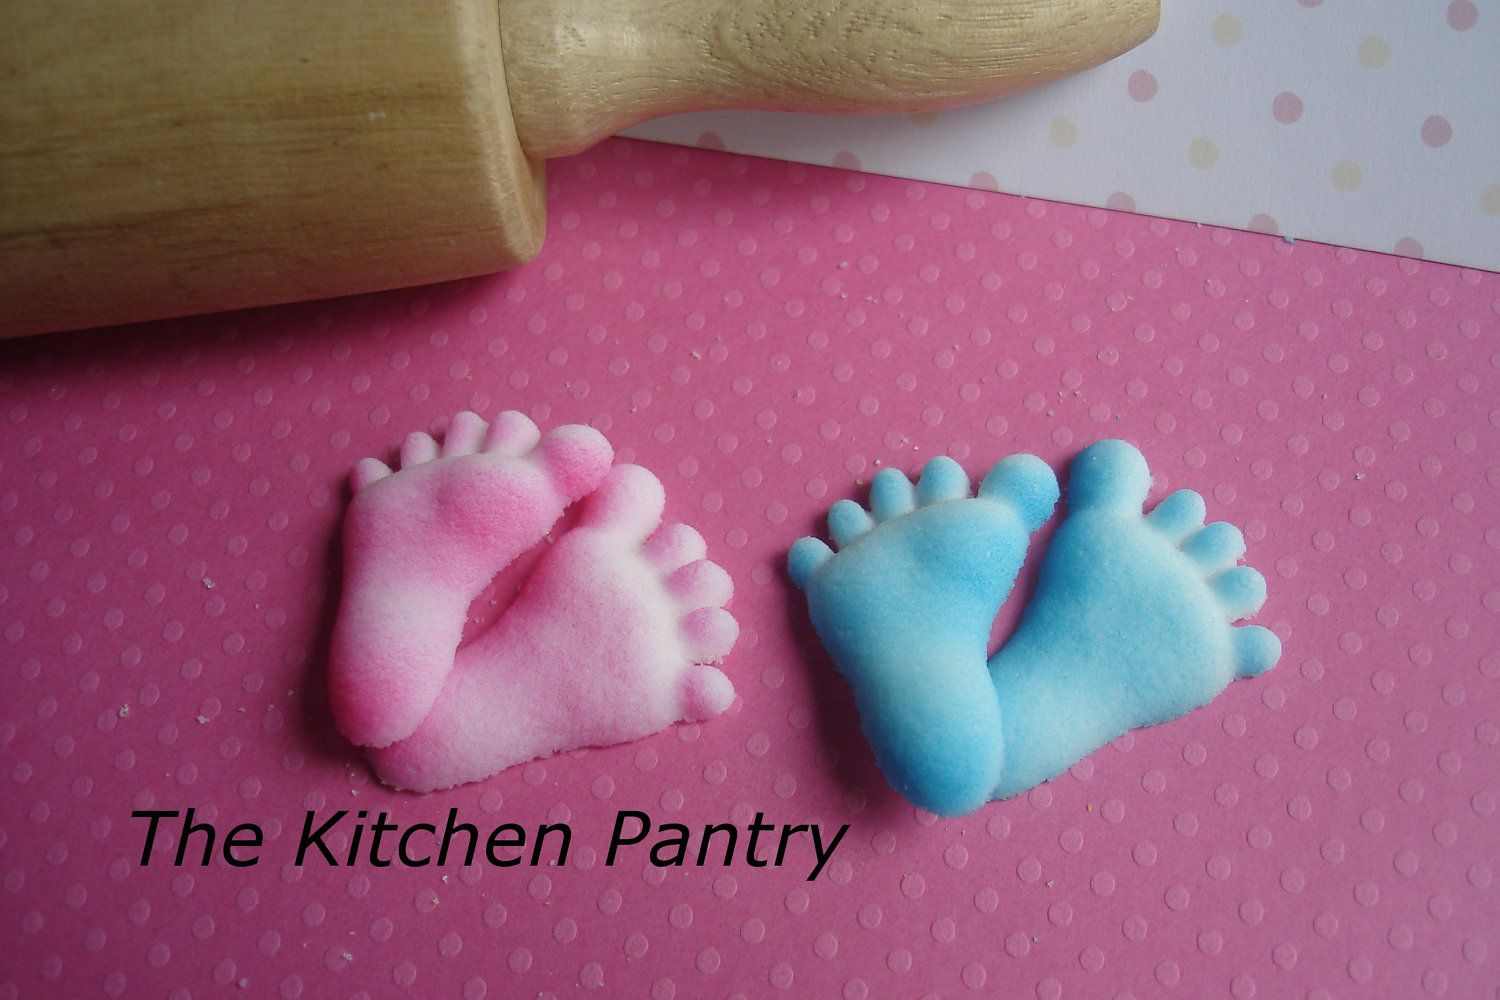 baby feet sugar decorations 12 baby shower edible candy feet blue only voetjes. Black Bedroom Furniture Sets. Home Design Ideas